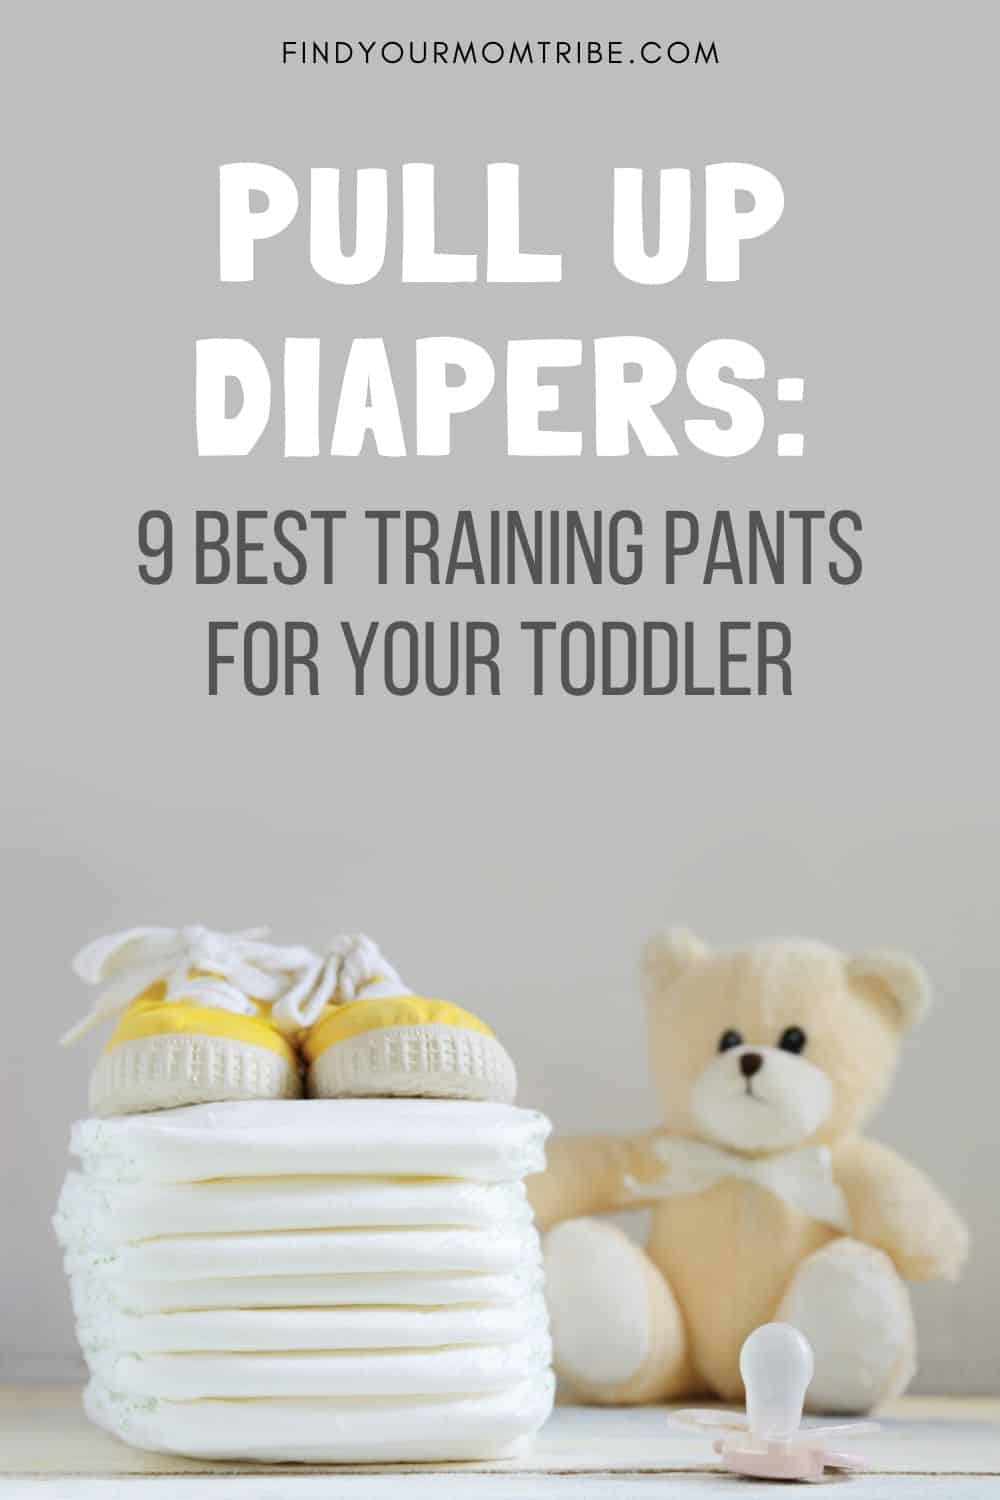 Pull Up Diapers Pinterest